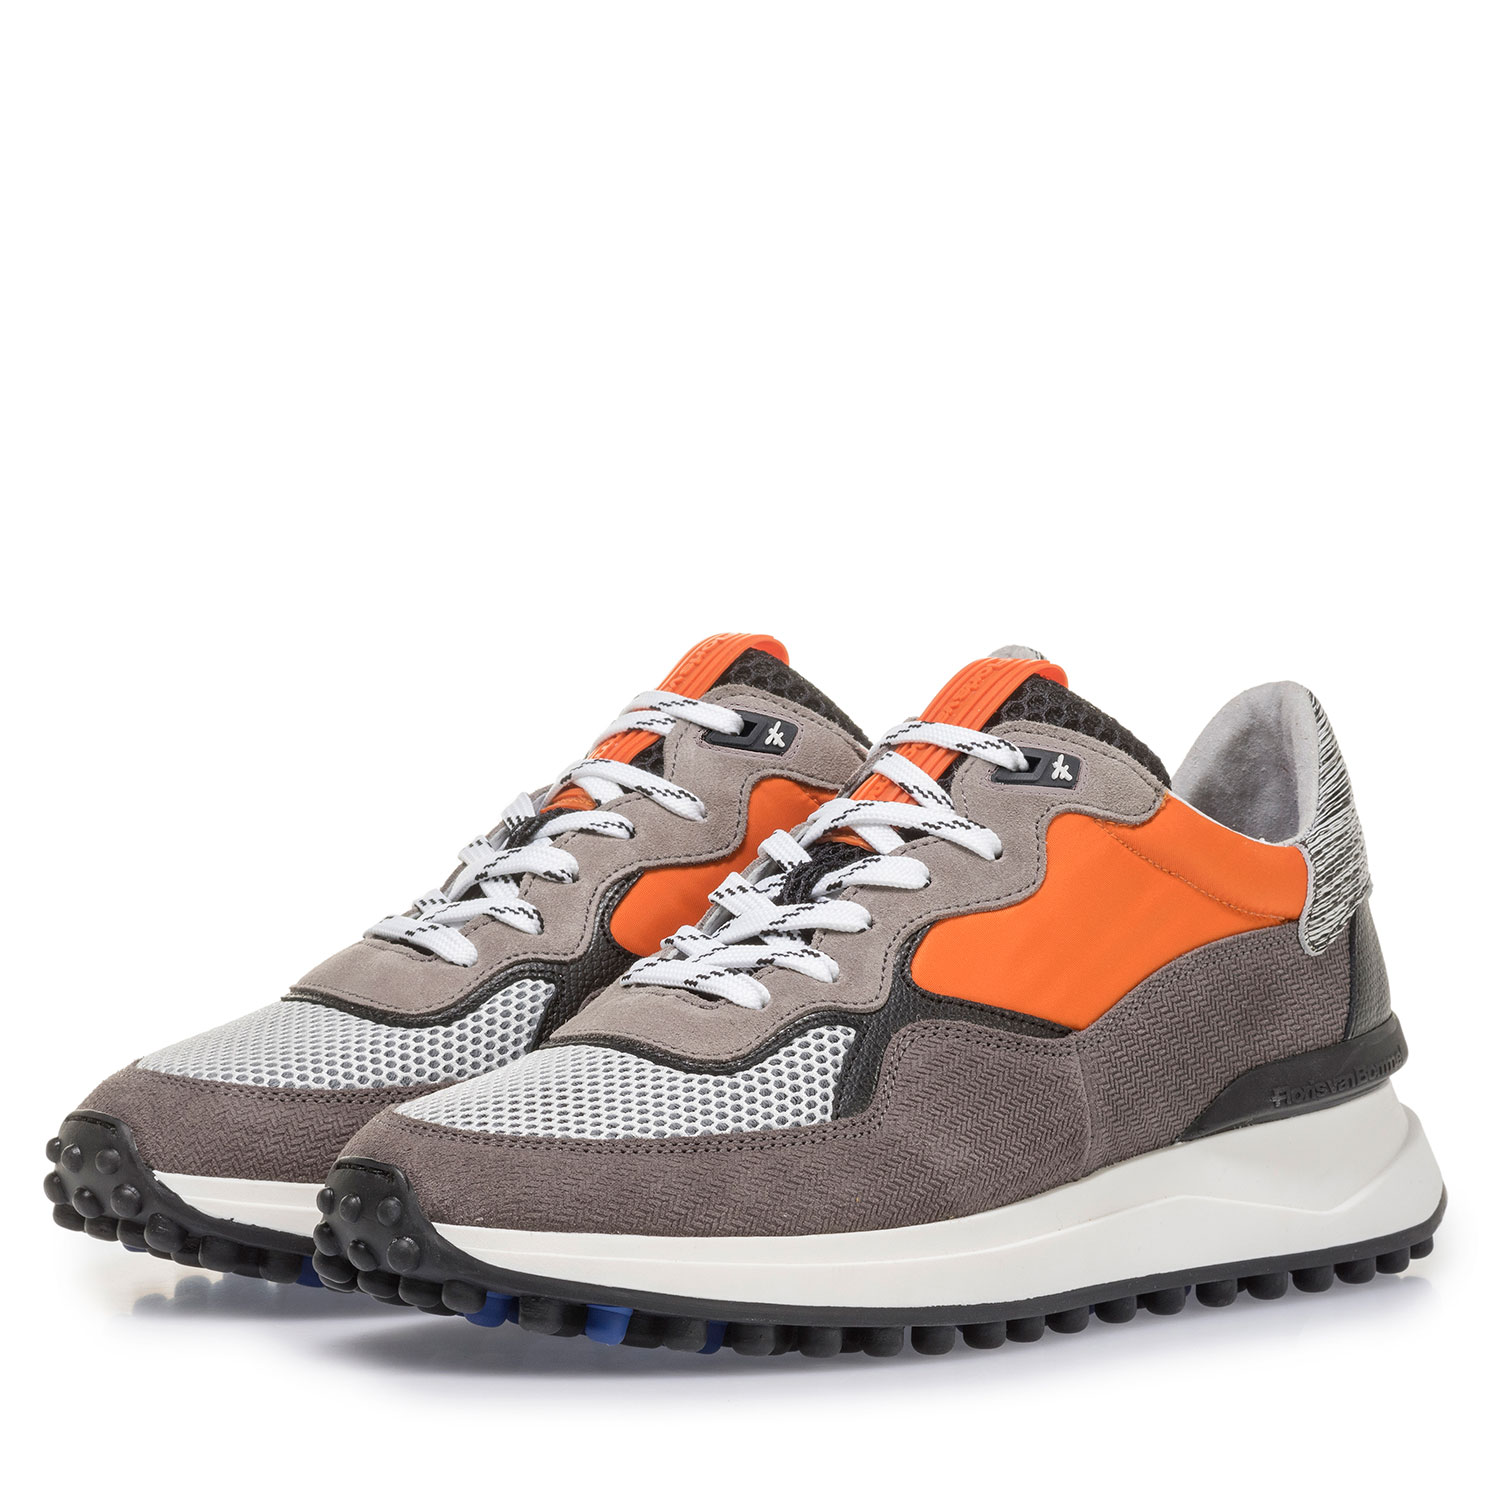 16301/08 - Grey suede leather sneaker with orange details